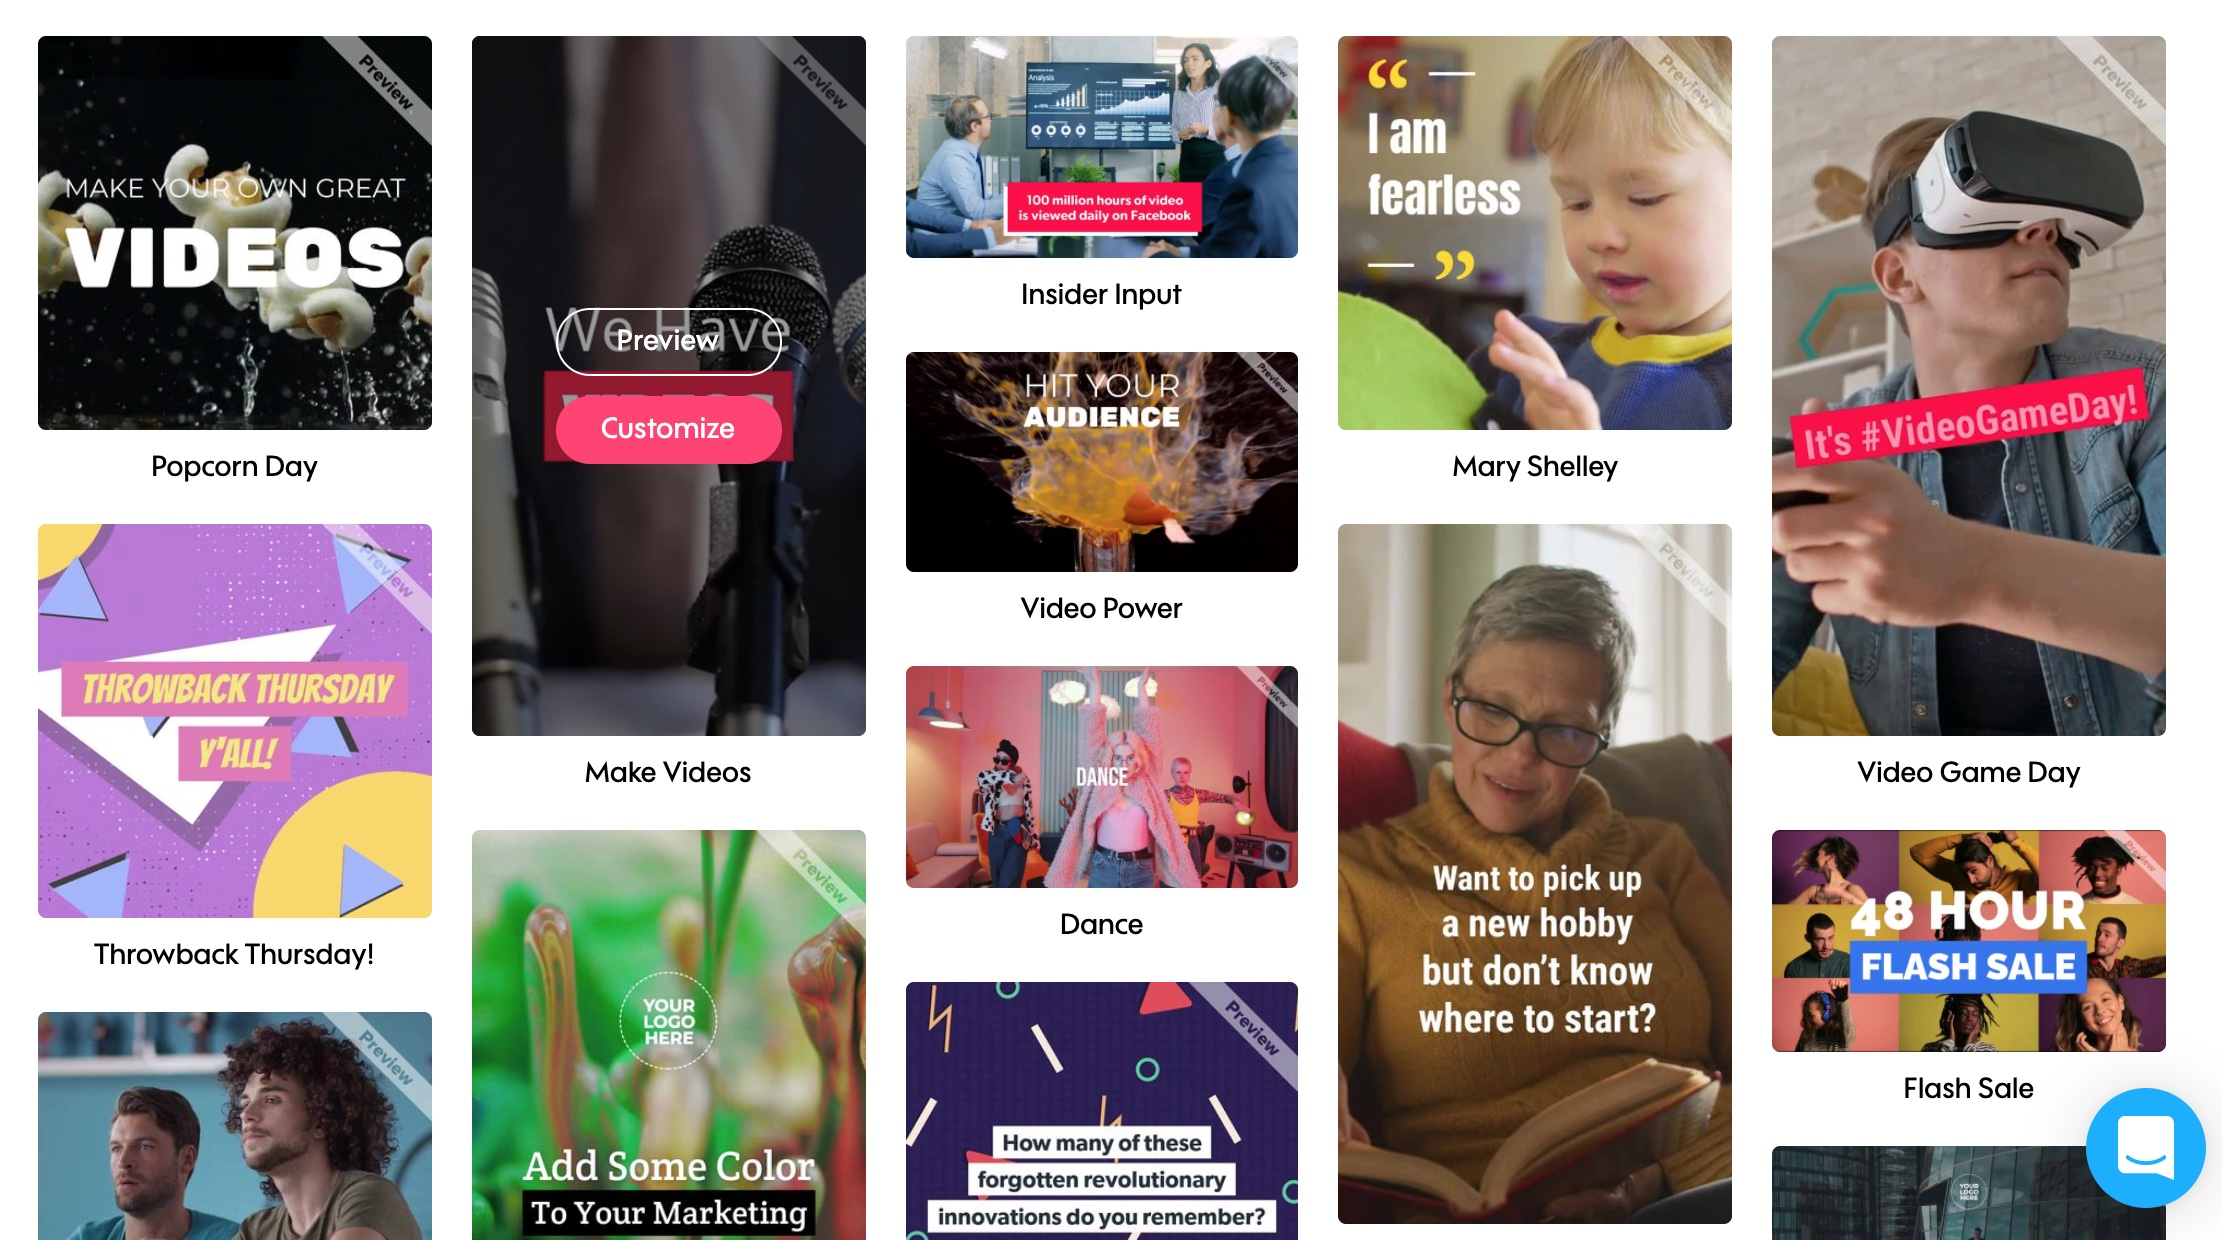 Getty Images leads $16M investment in Promo.com, a social video template tool